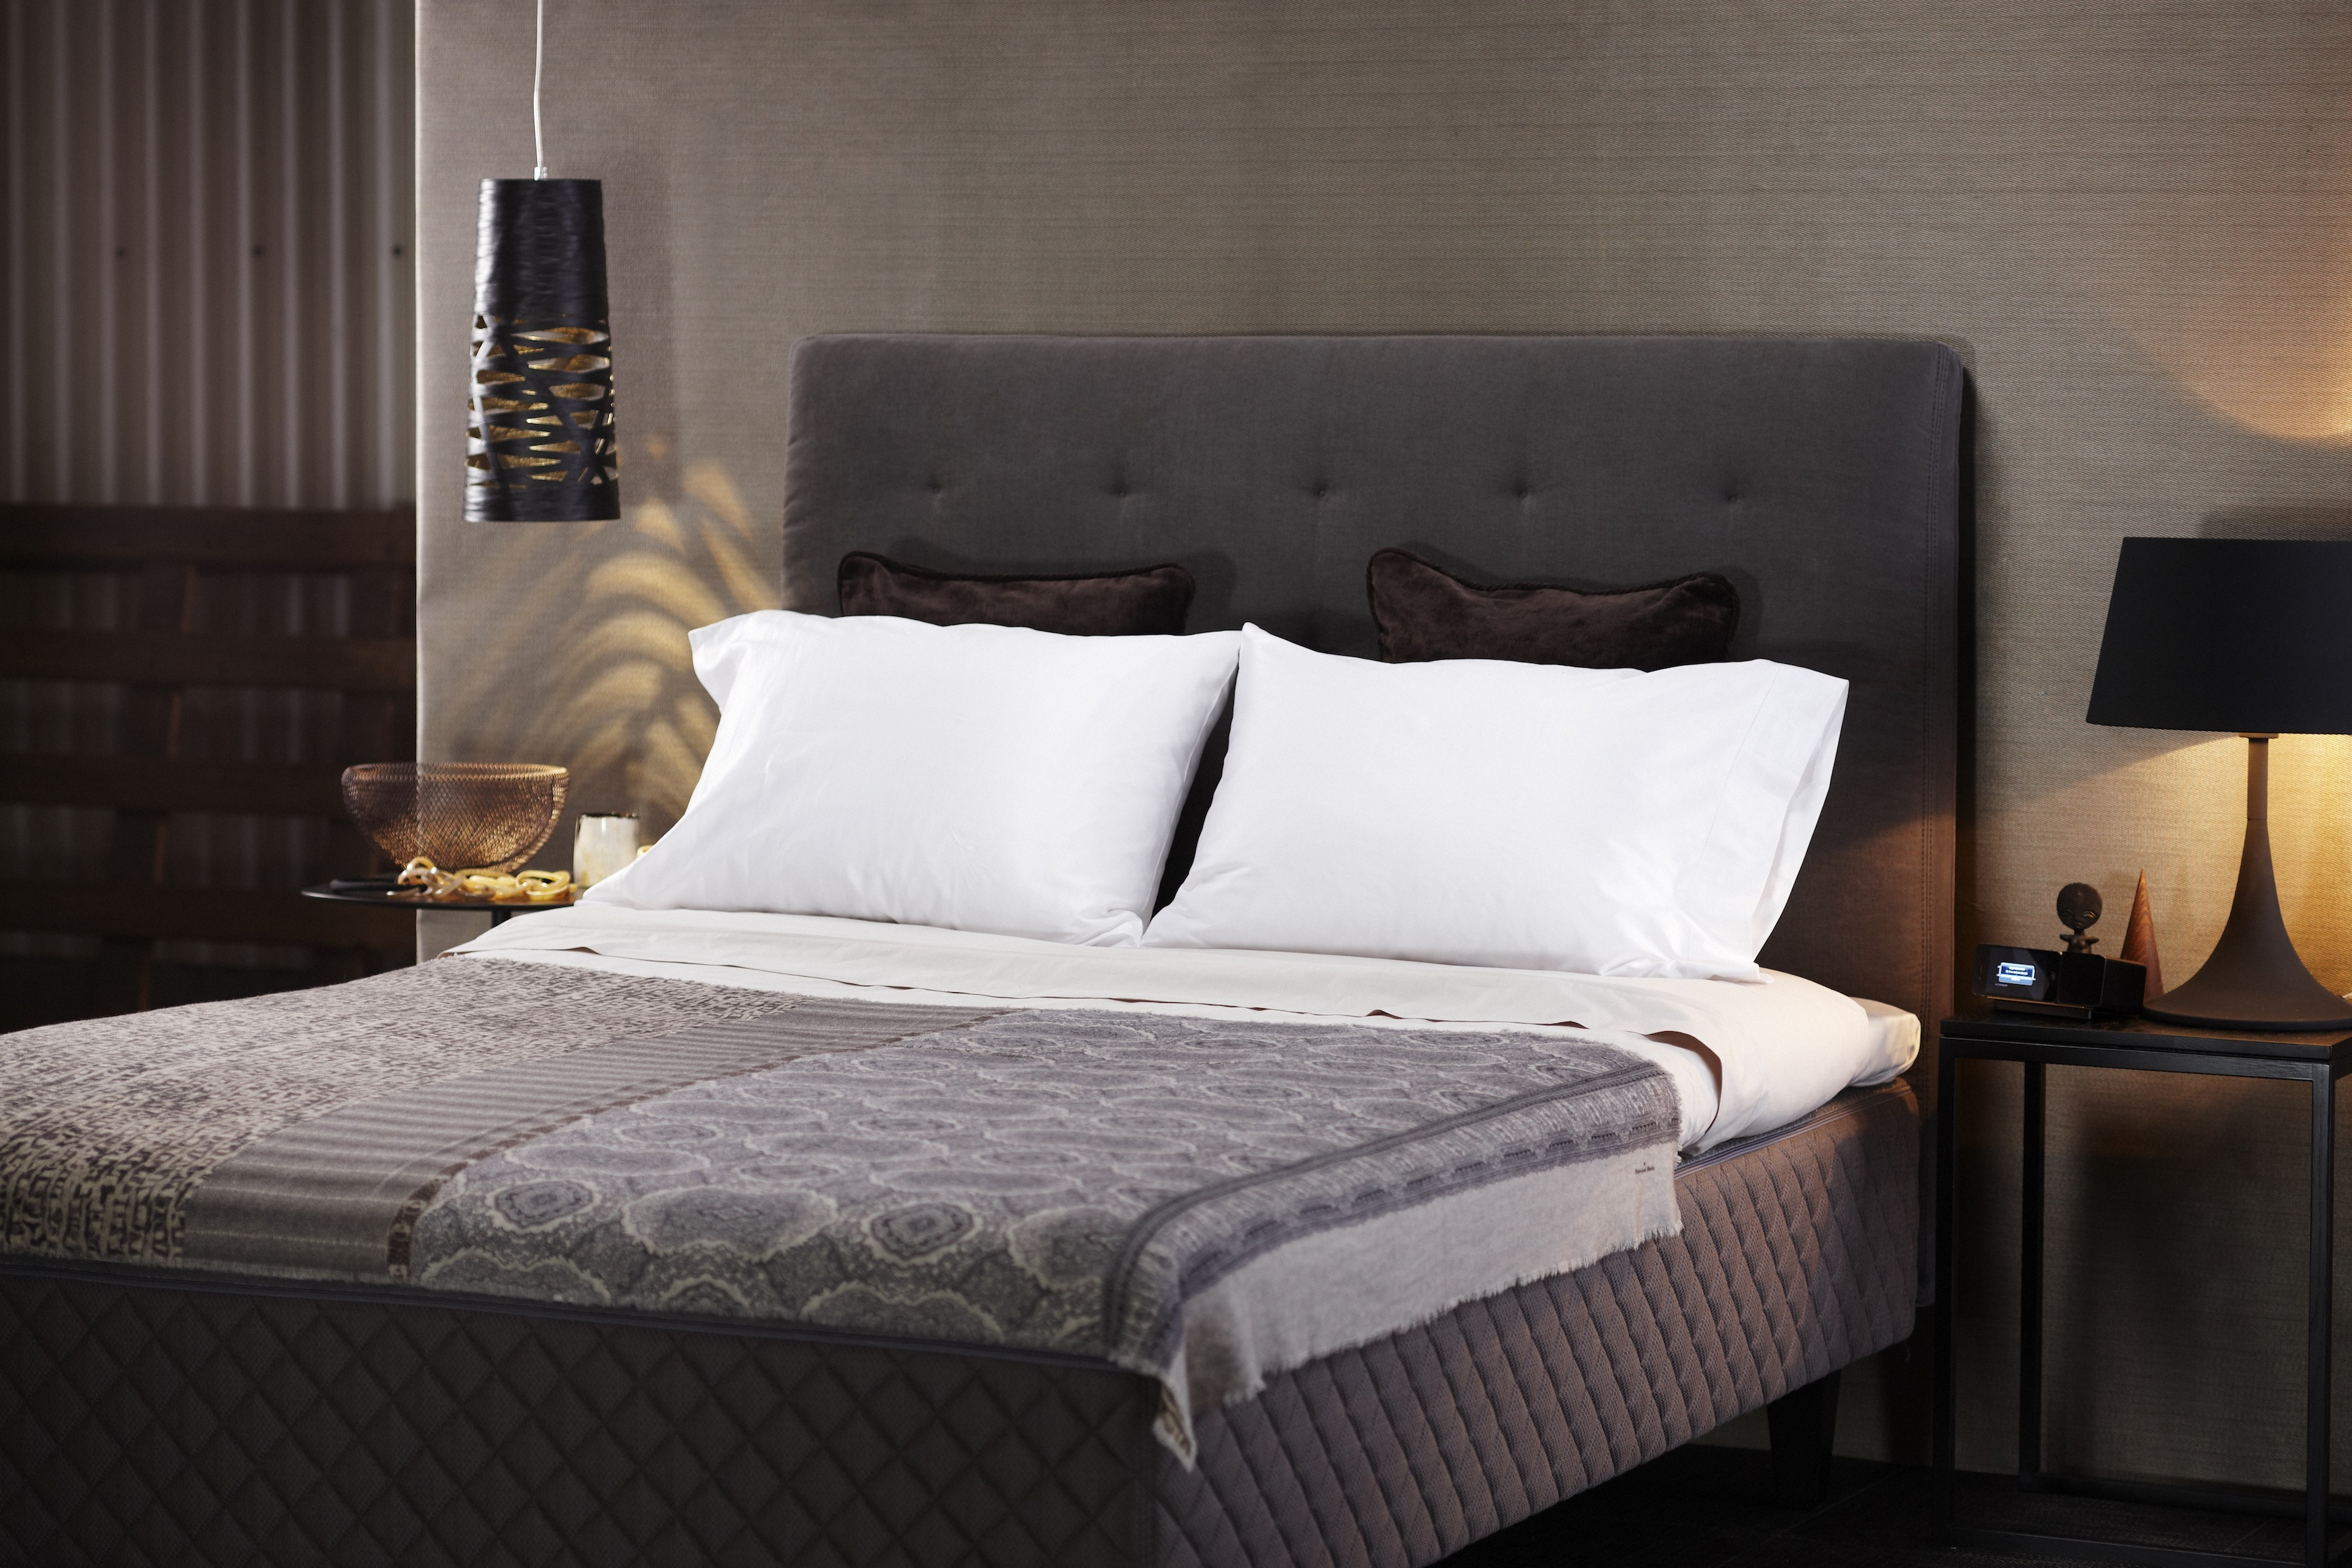 DUXIANA® Unveils Newest in Luxury Beds, the DUX 101